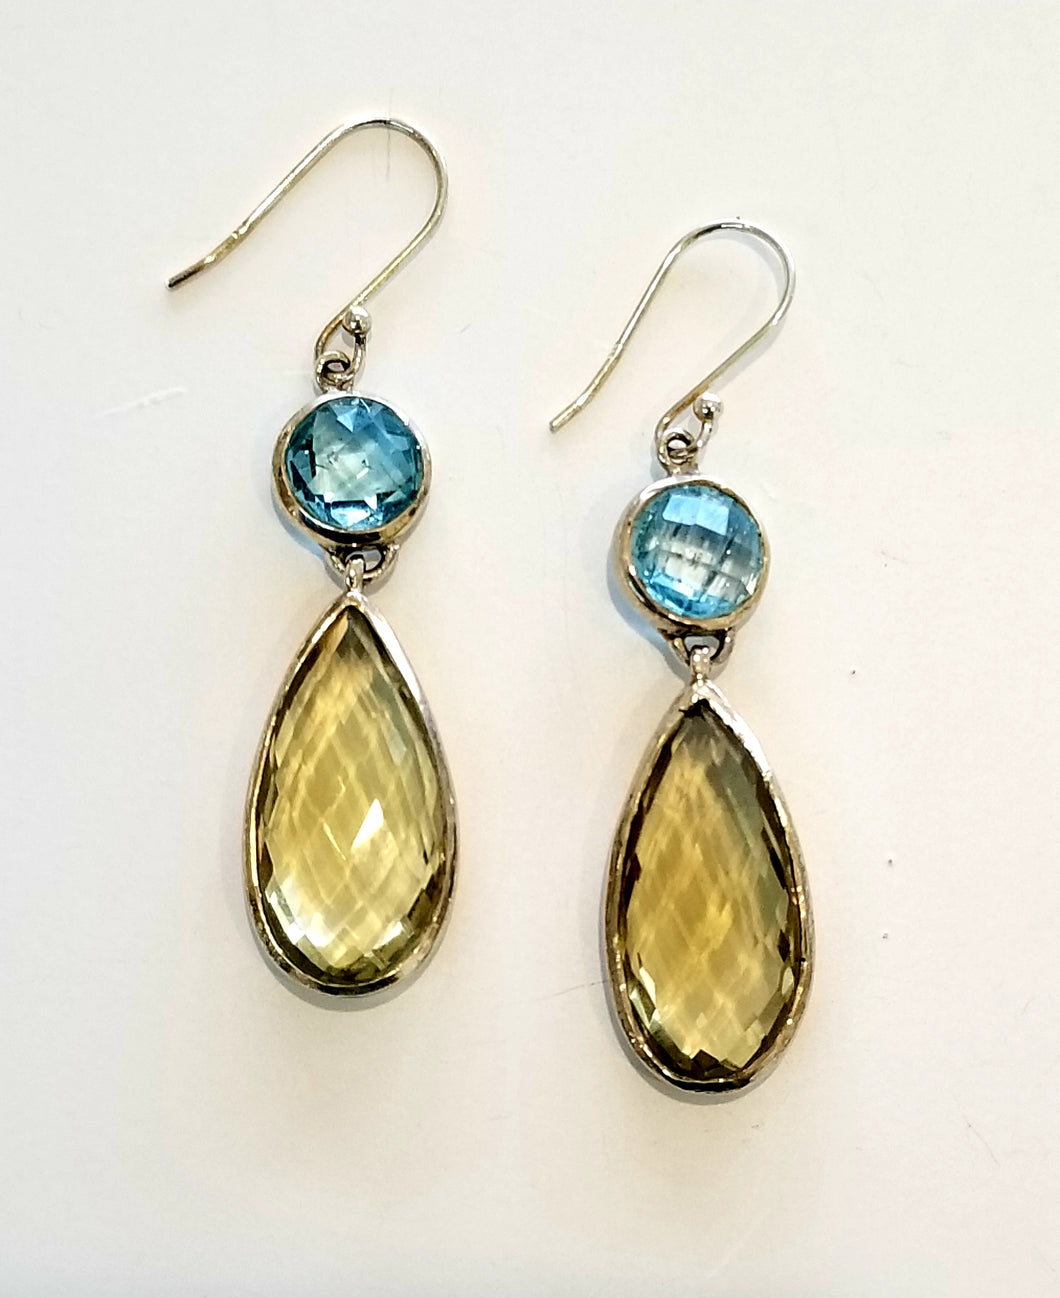 Lemon quartz and blue topaz earrings